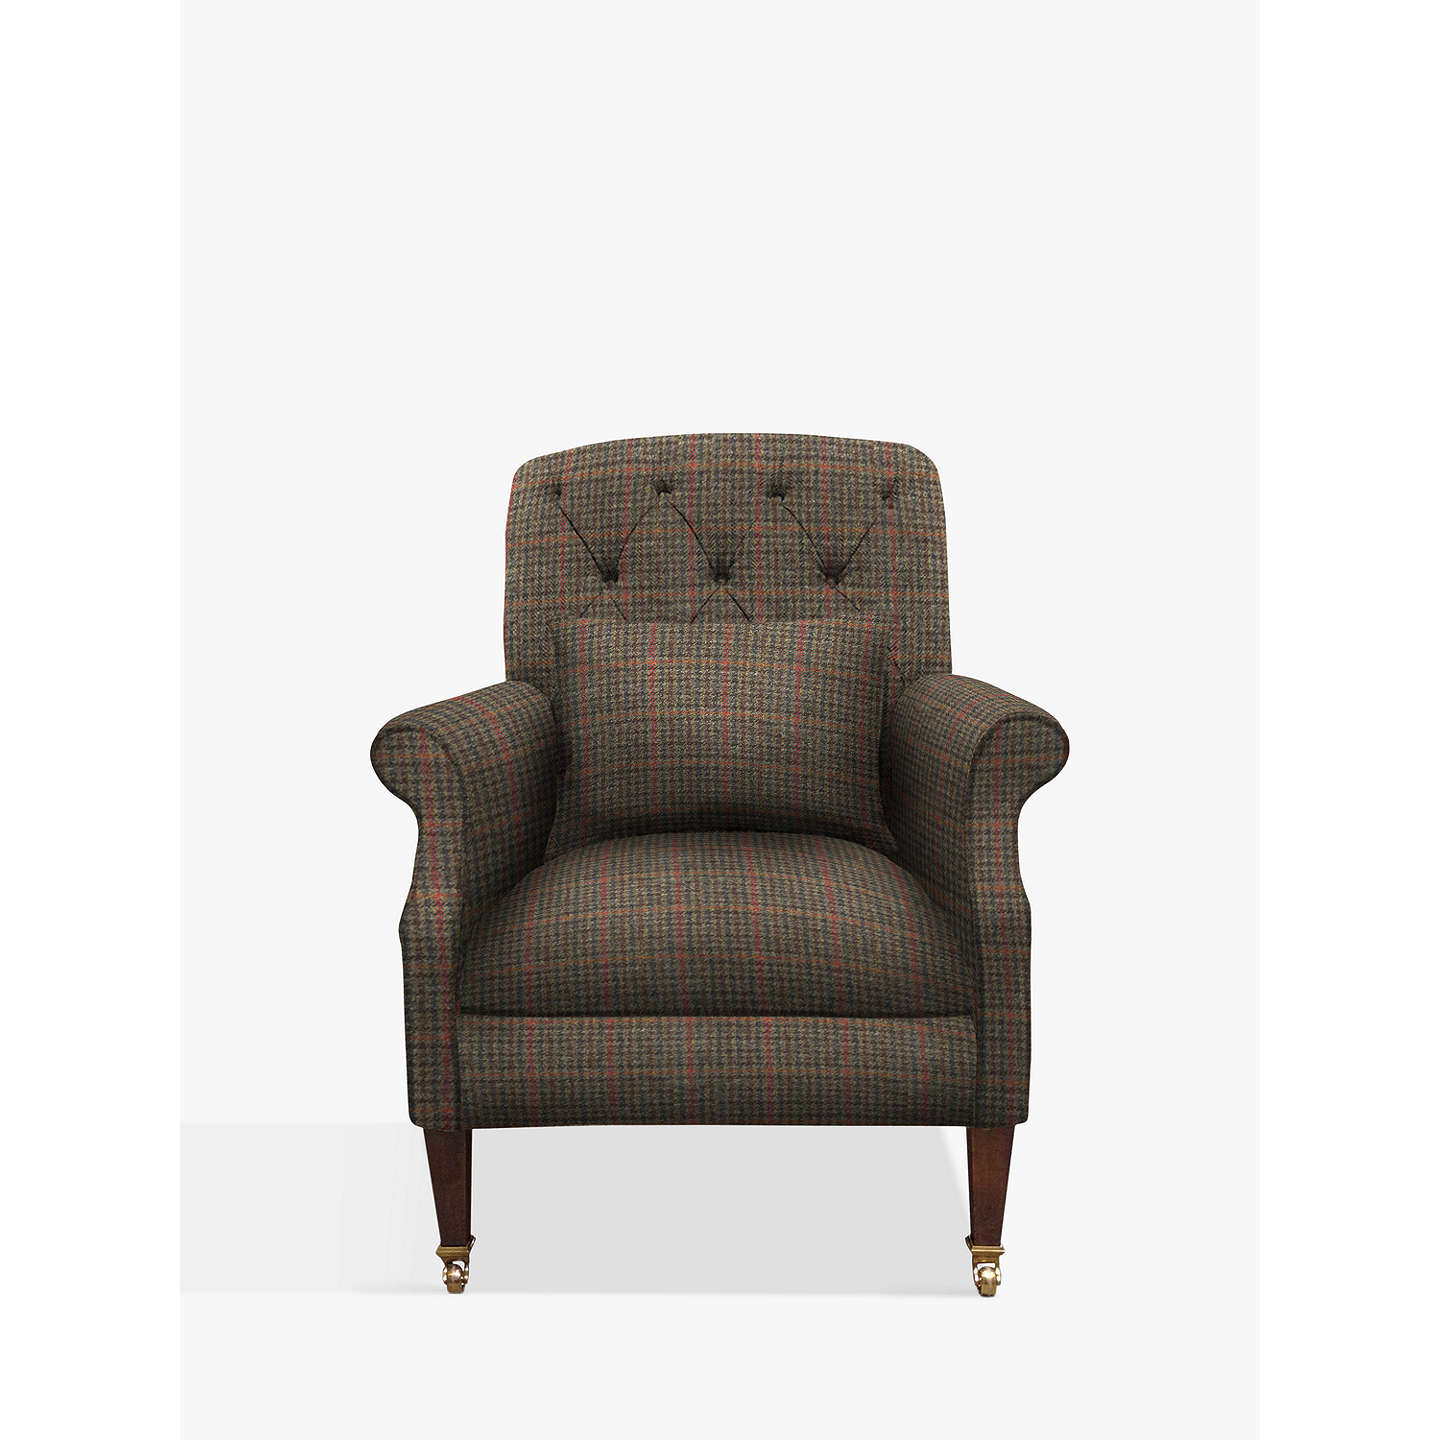 w en tweed online chair design concept no interior rocking products dka shop furniture beige oak